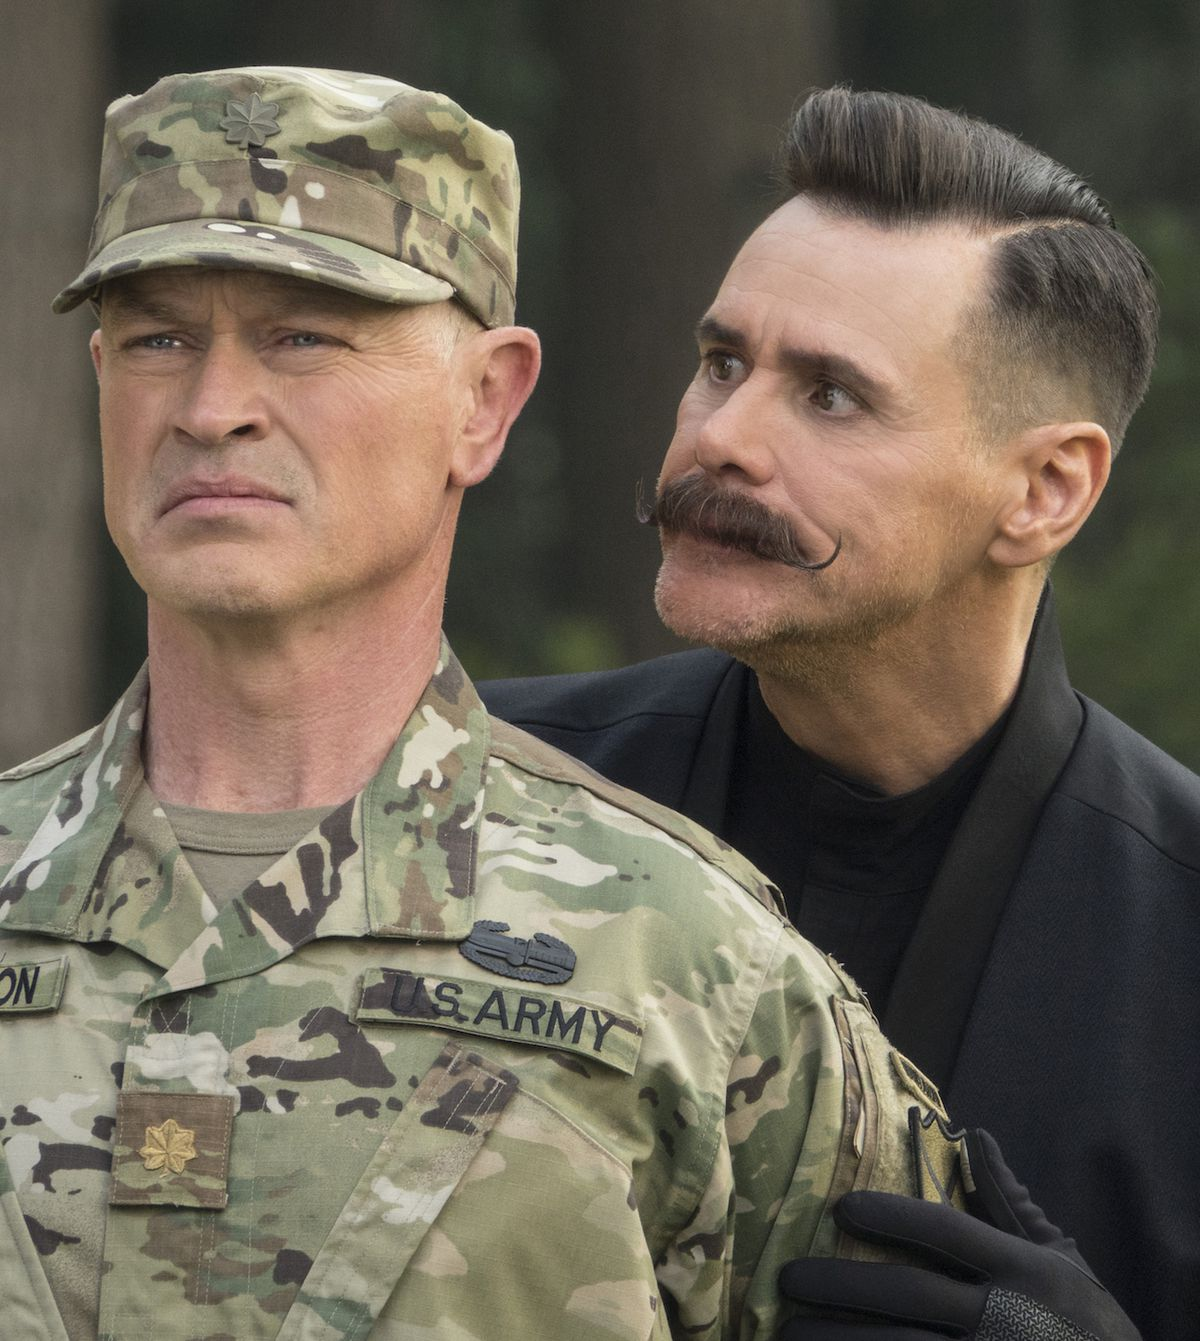 Dr. Robotnik (Jim Carrey) annoys Army officer (Neal McDonough) in Sonic the Hedgehog